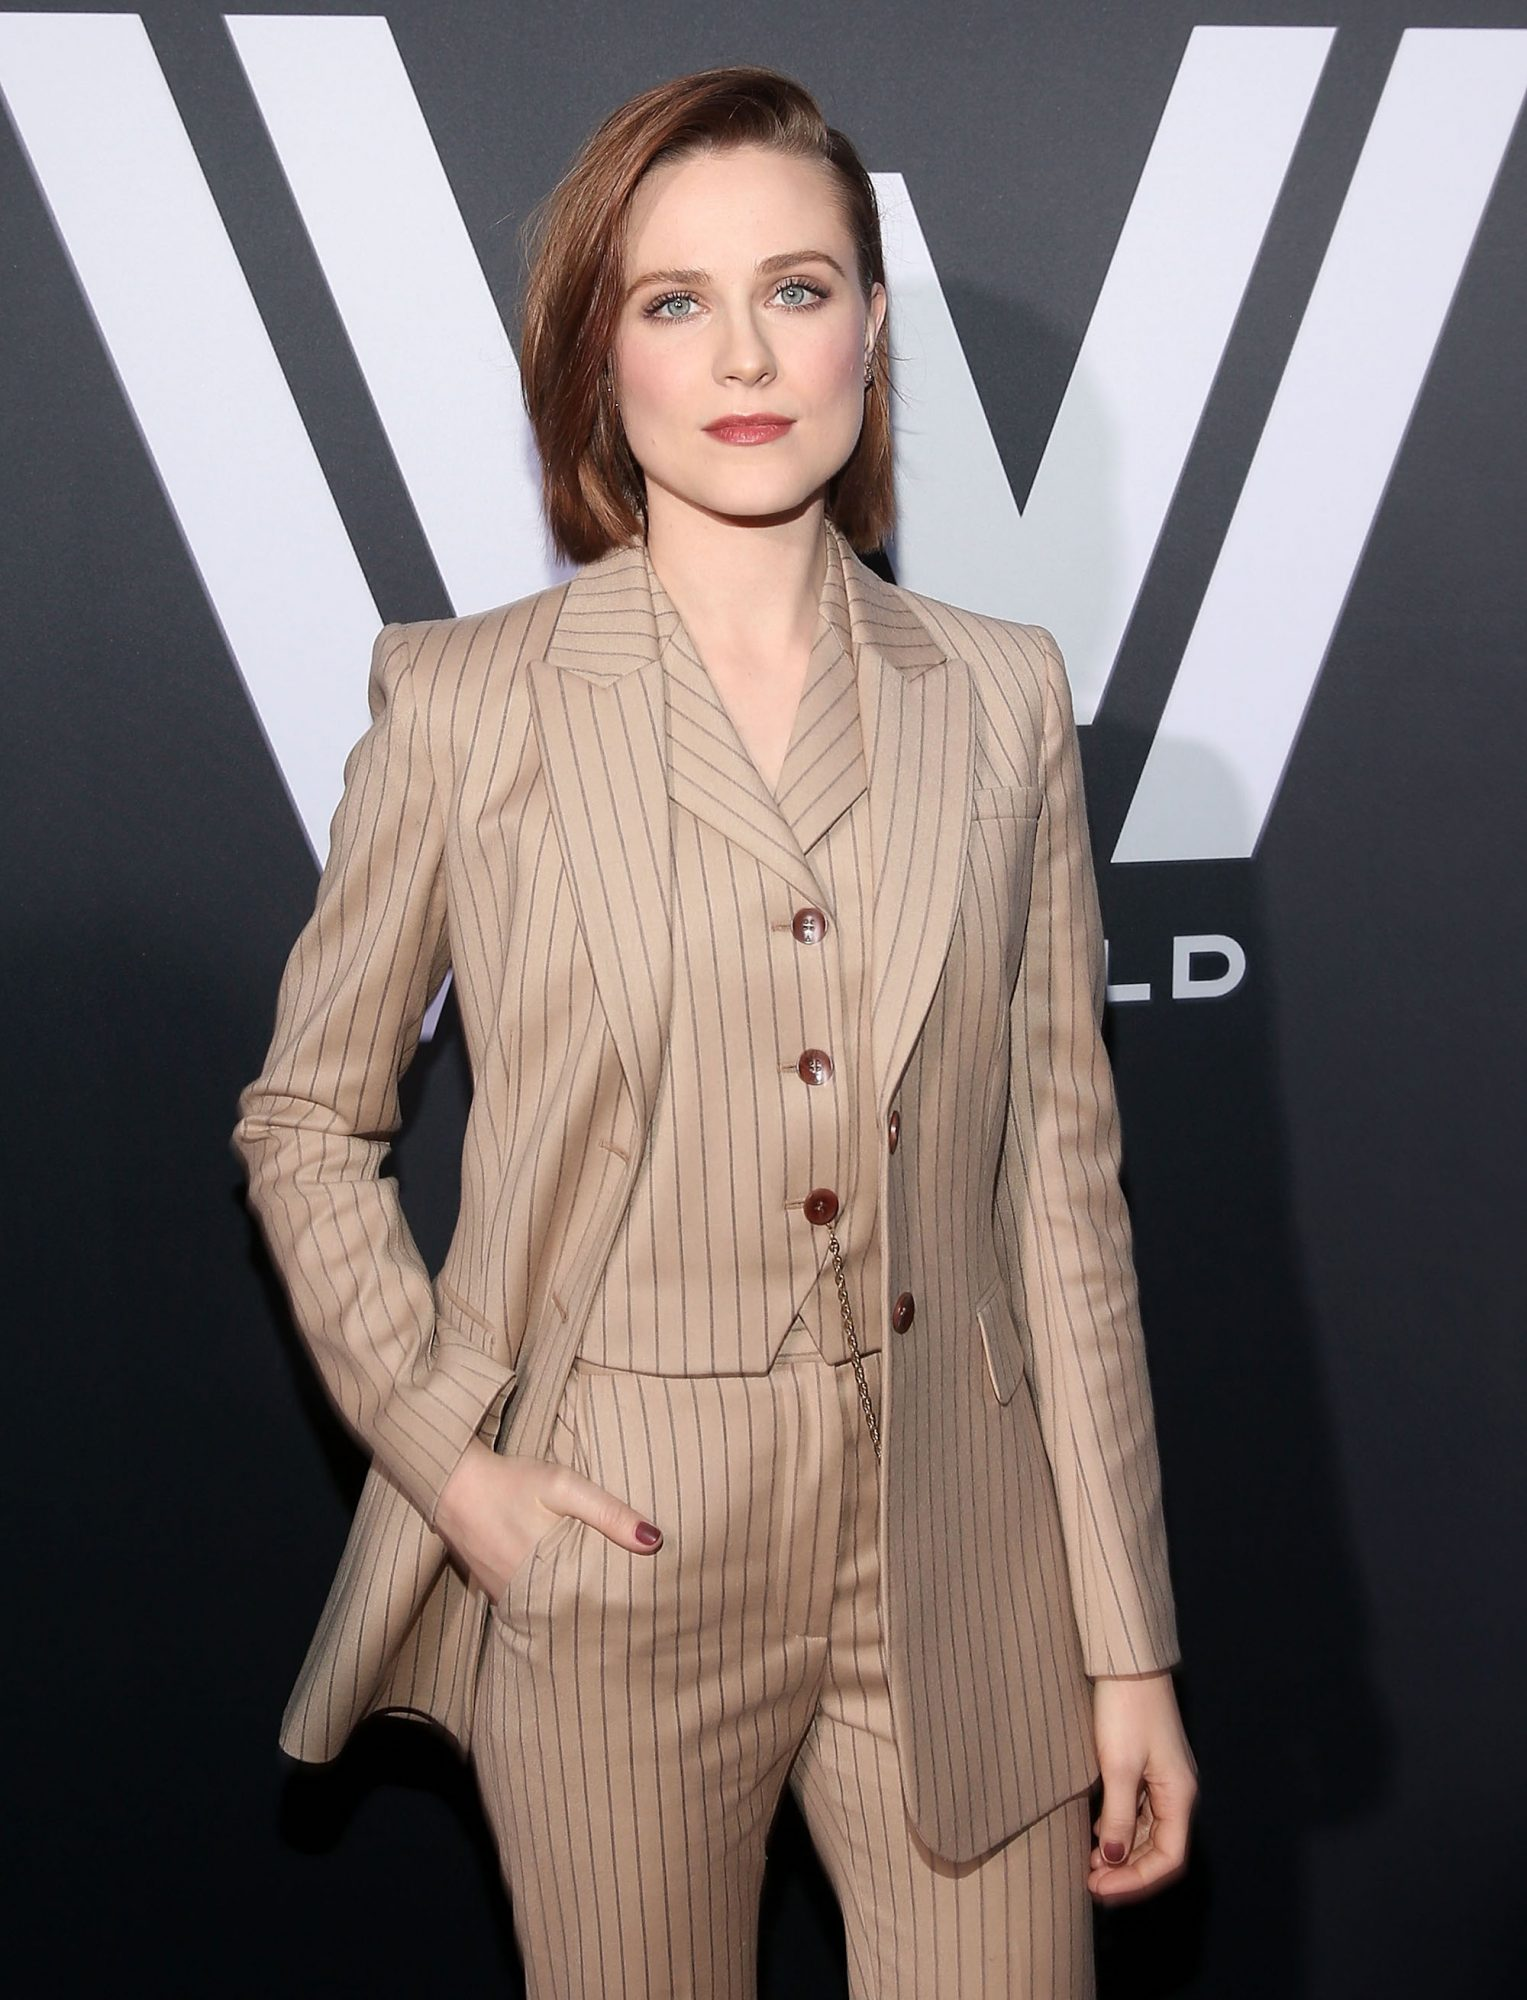 Evan Rachel Wood lead